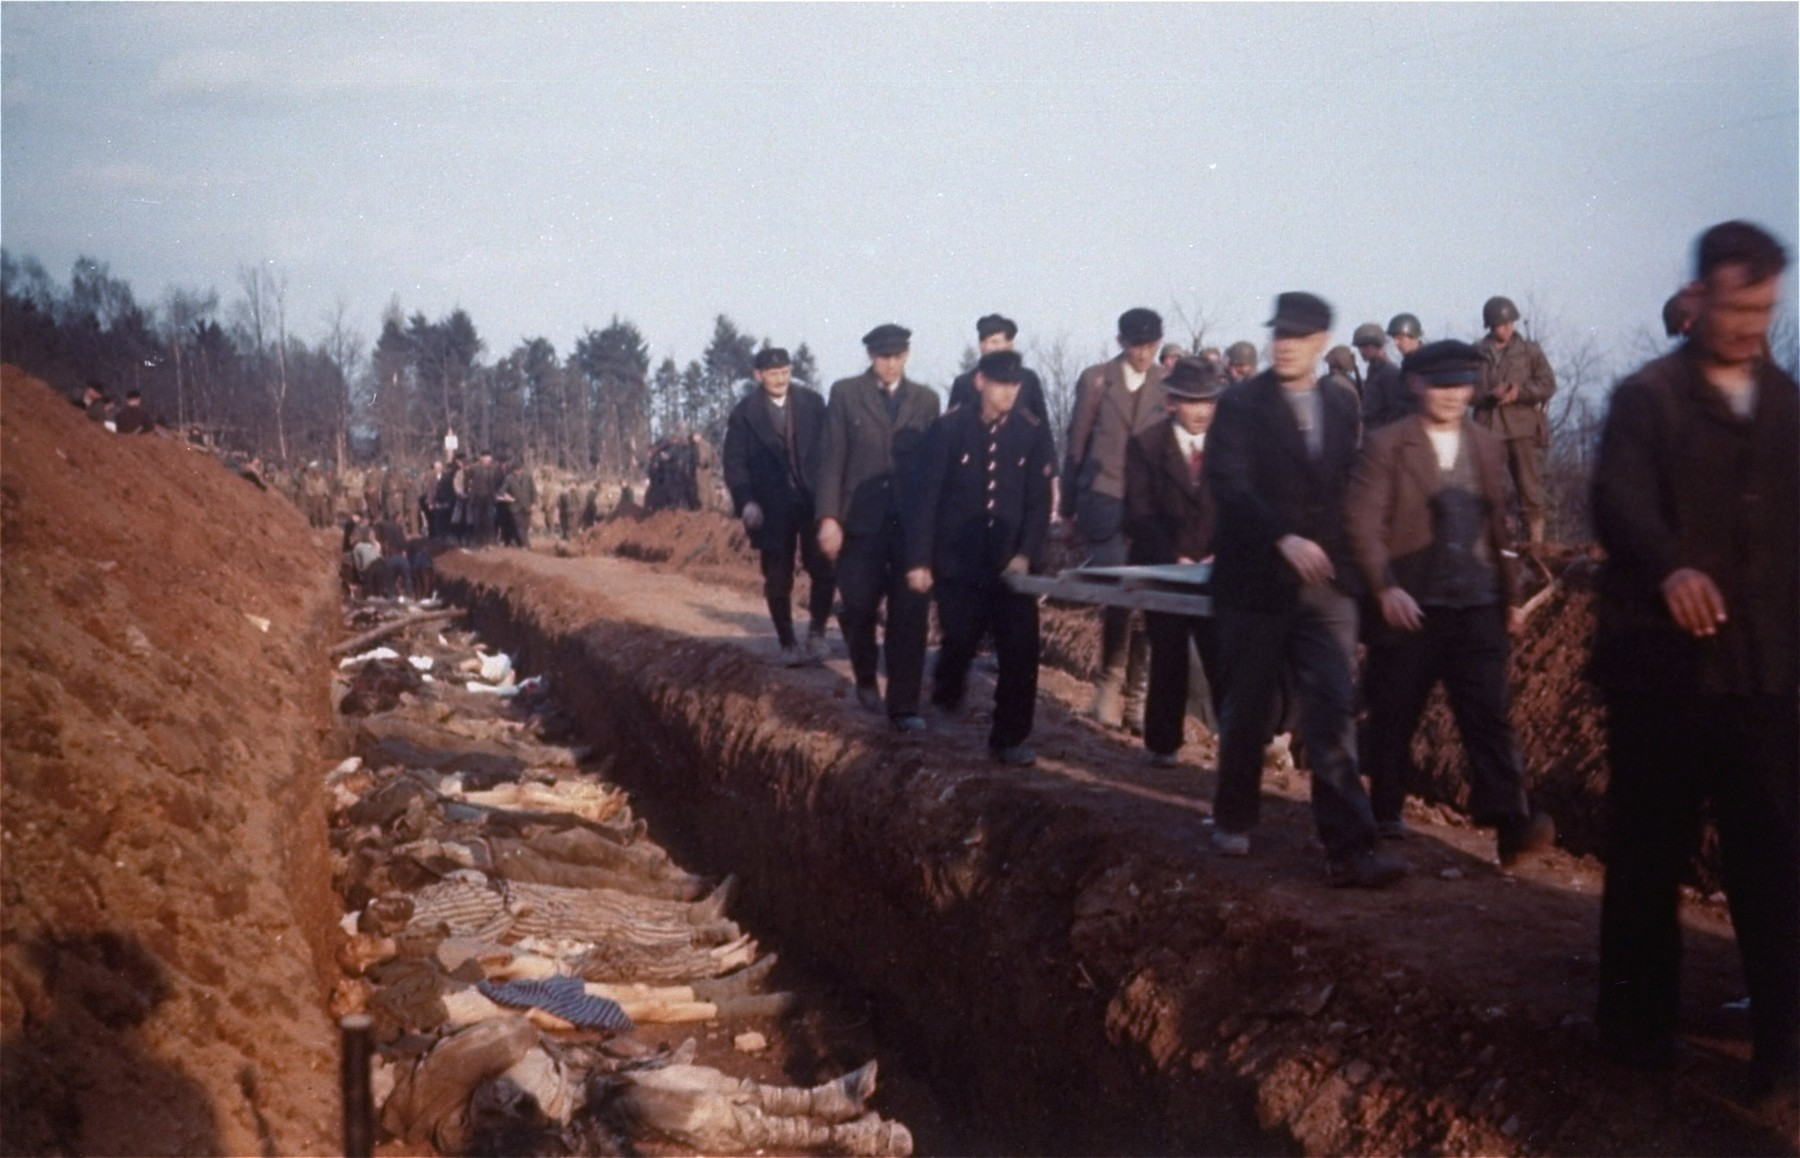 German civilians from the town of Nordhausen carry the bodies of prisoners found in the Nordhausen concentration camp to mass graves for burial.